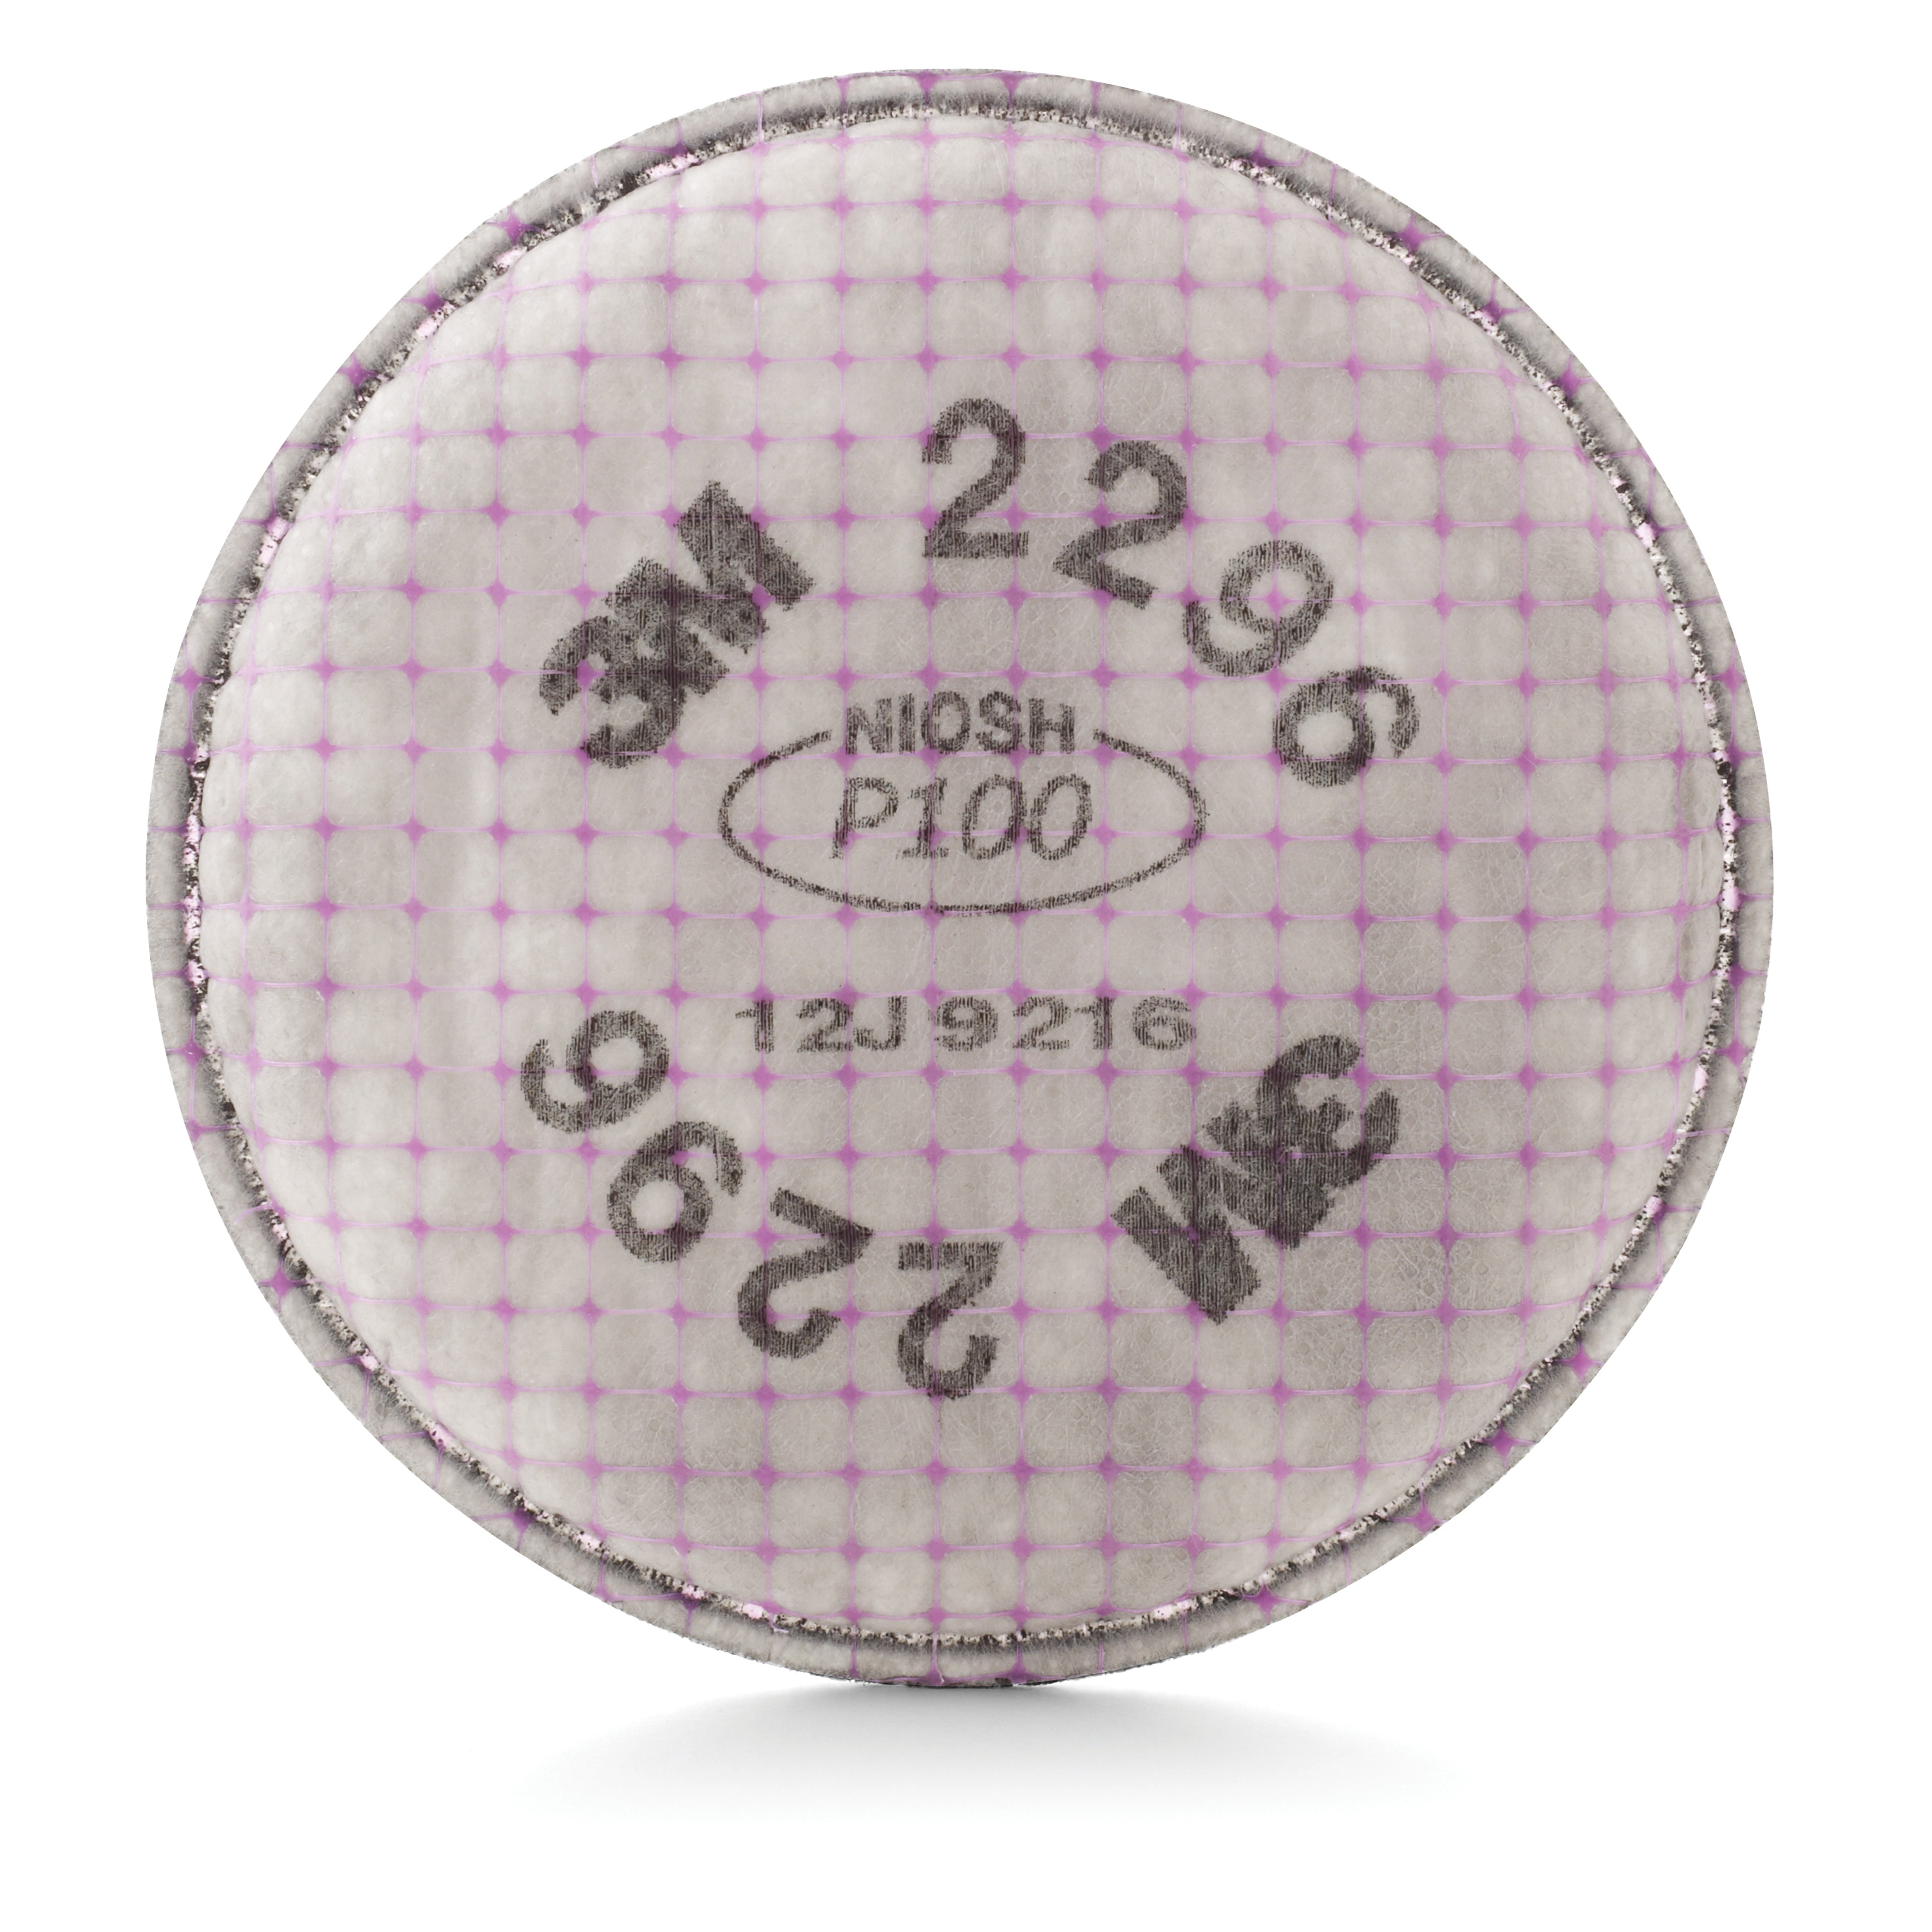 3M™ 2291 Advanced Particulate Filter, P100, Bayonet Connection, Magenta -- DUE TO HIGH DEMAND, we may be unable to fulfill any orders for this product regardless of stock status indicated.